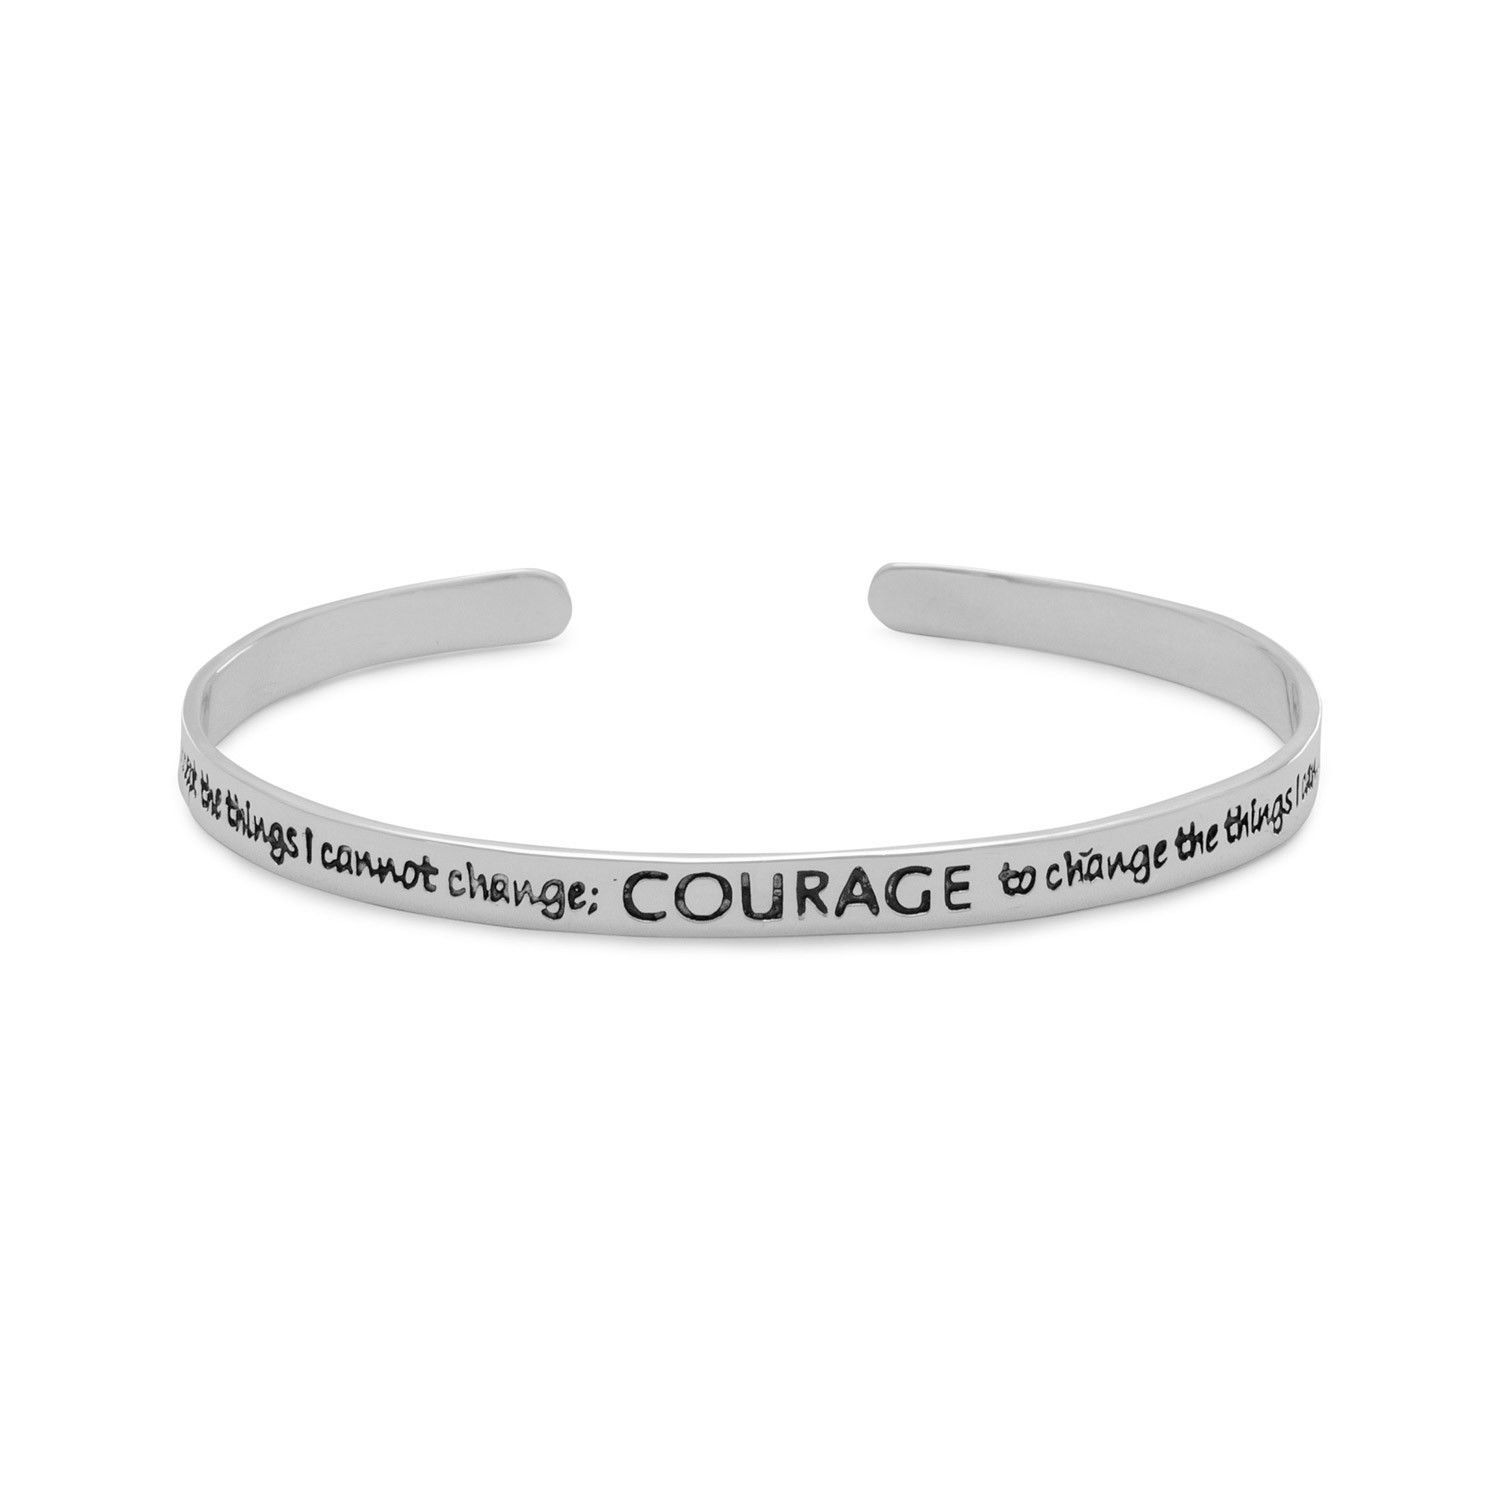 Primary image for Women's Sterling Silver Oxidized Serenity Prayer Cuff Bracelet